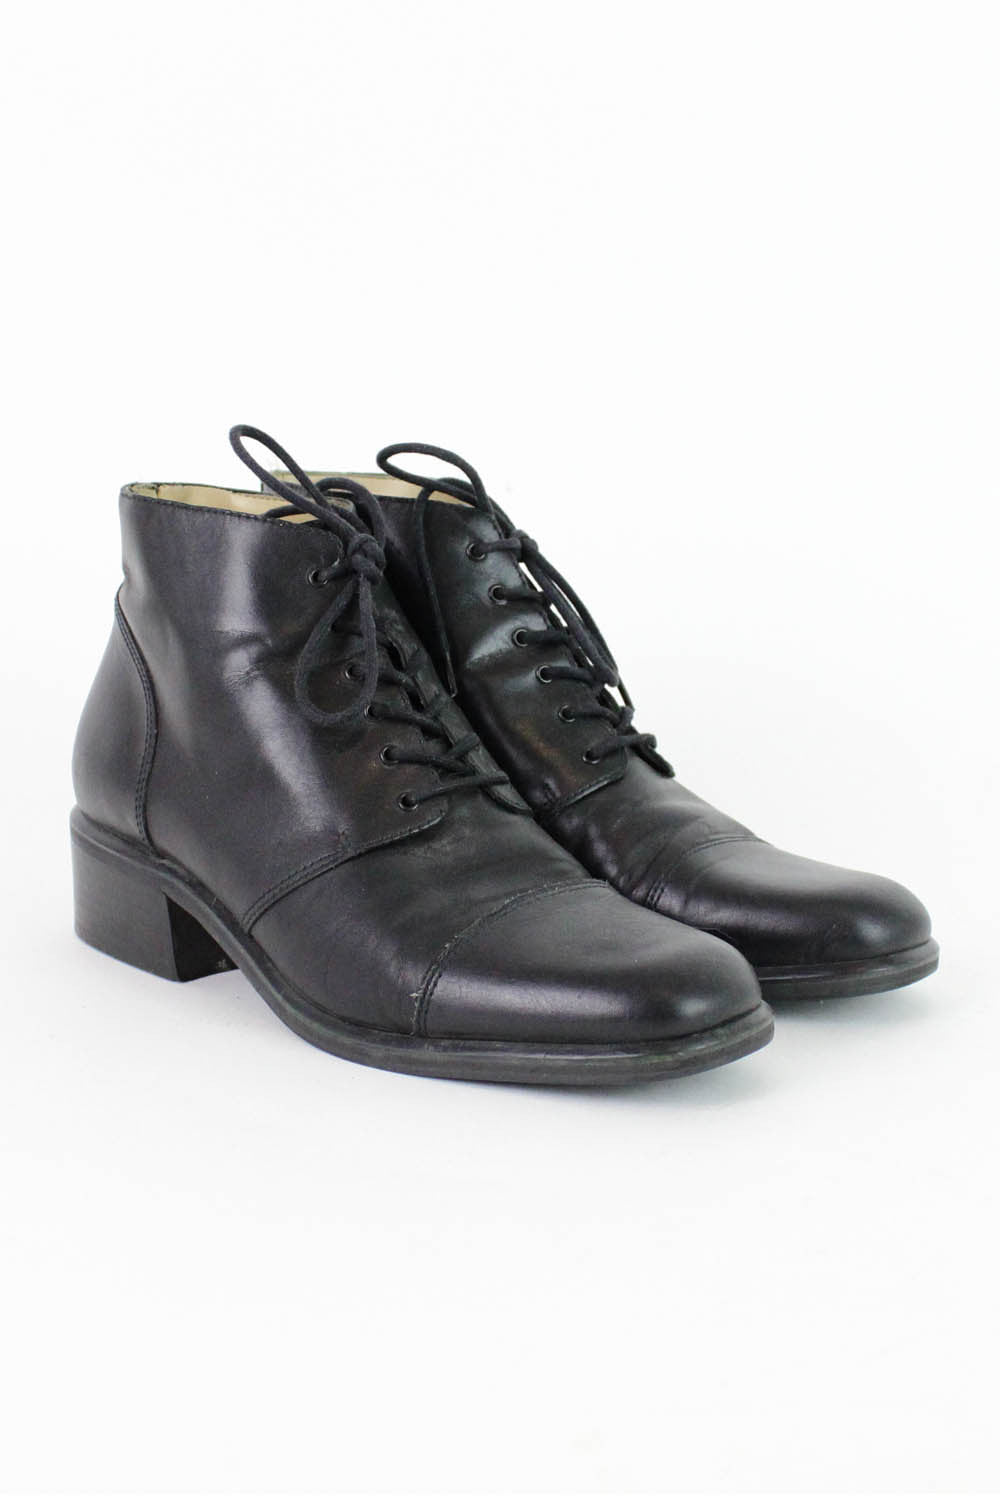 Black Lace Up Ankle Boots 7.5